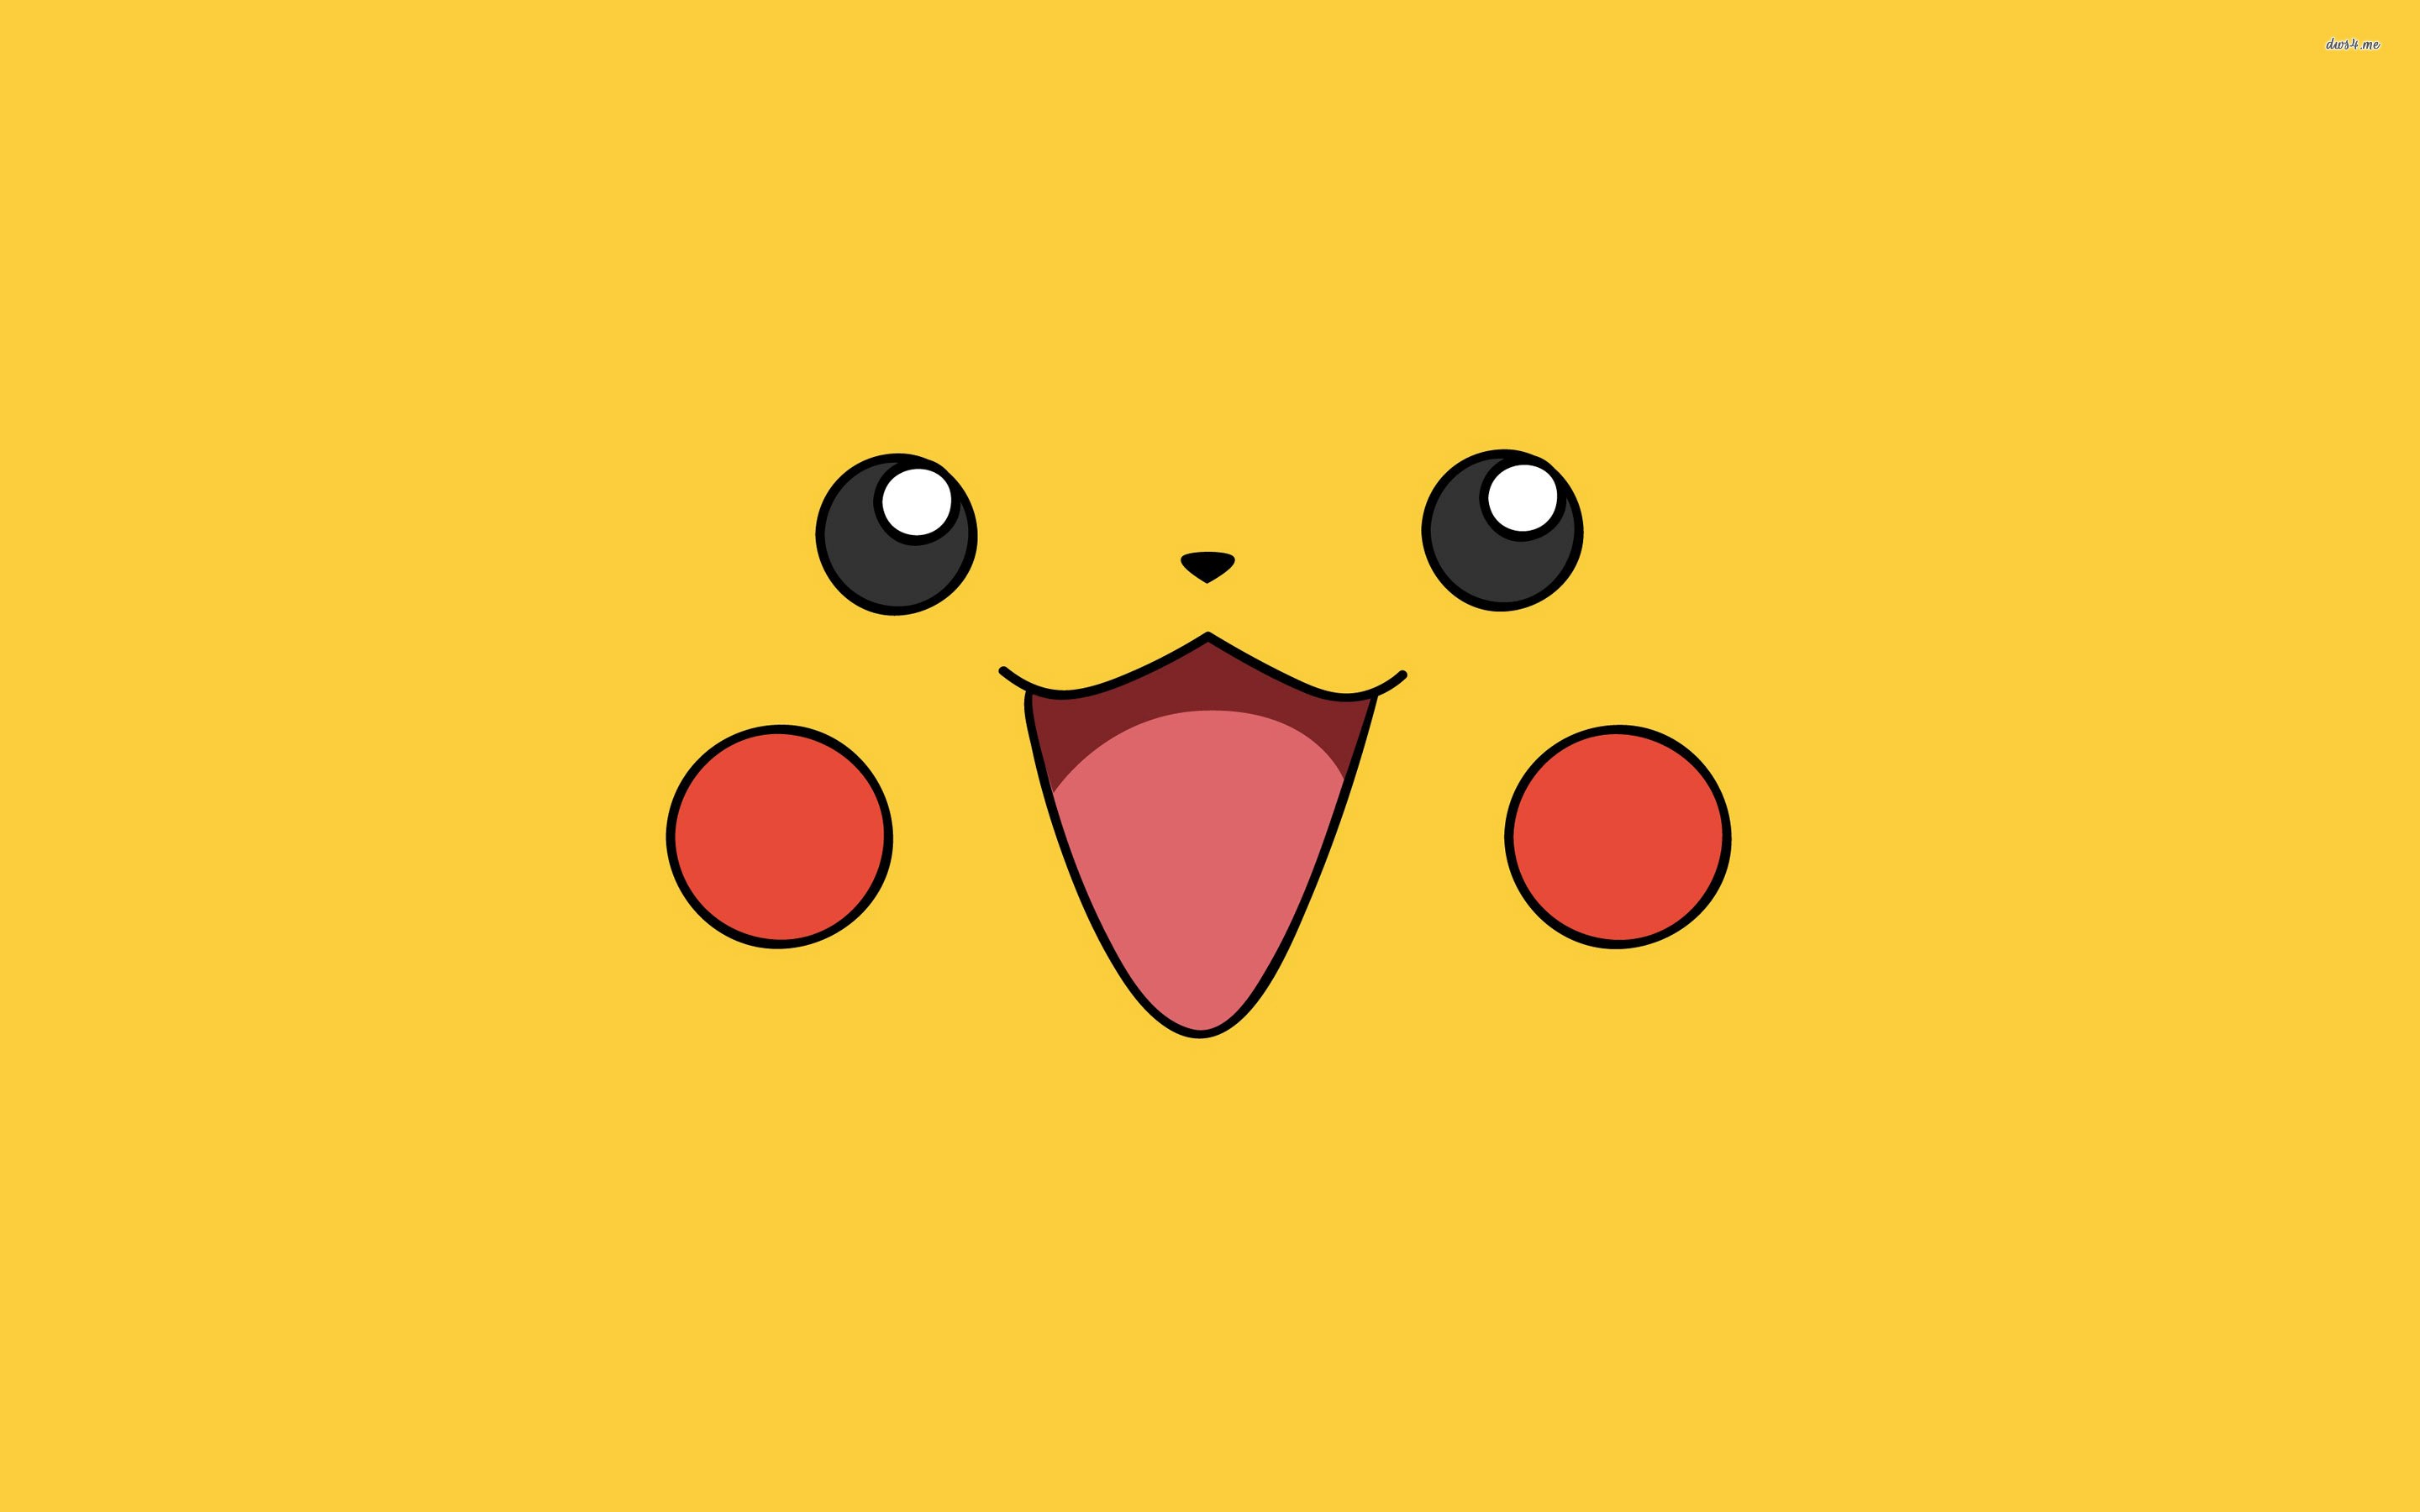 pikachu face wallpaper